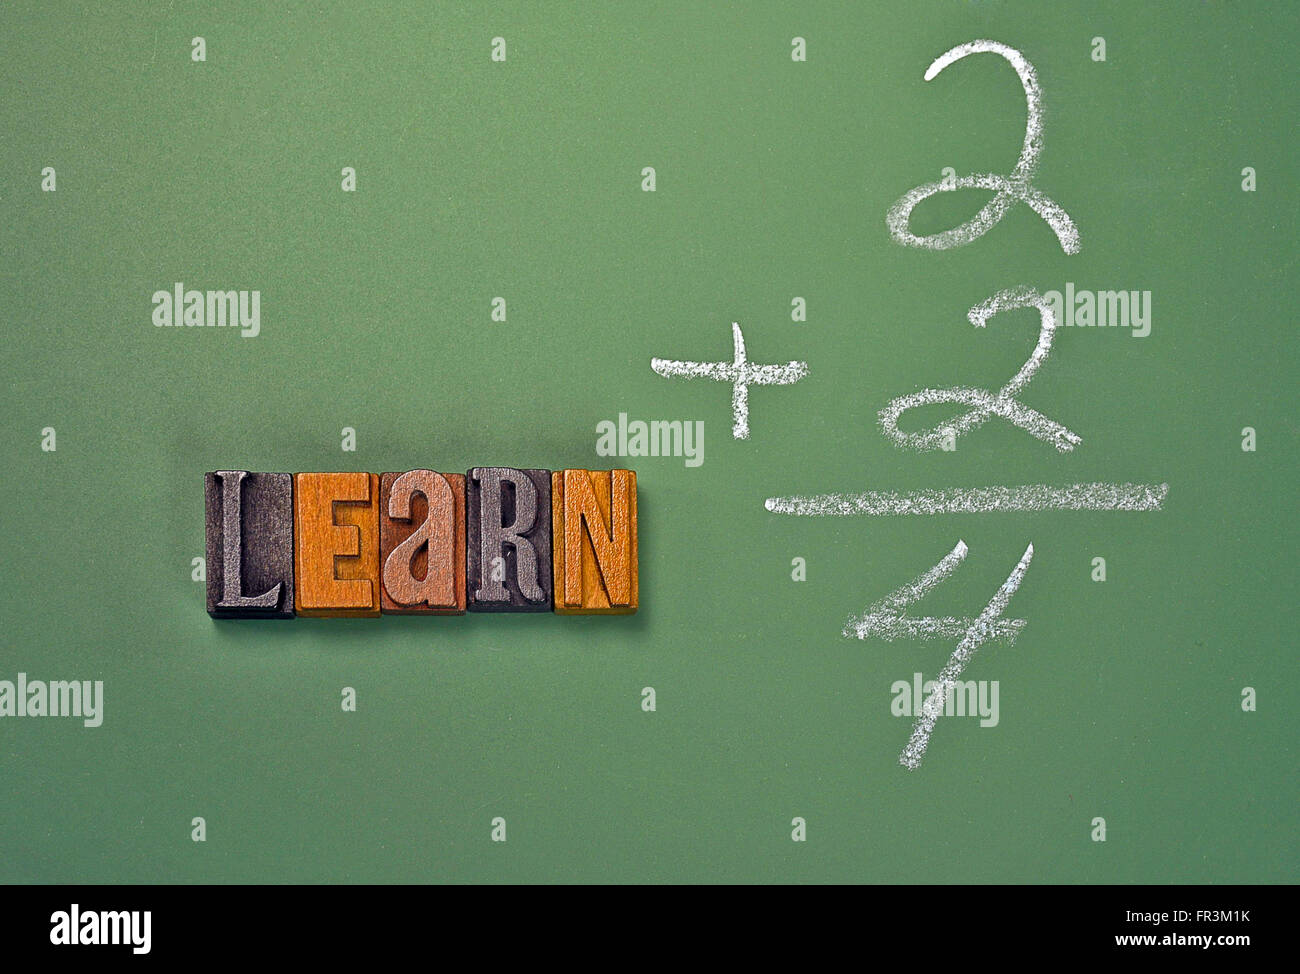 Math Problem Chalkboard Stock Photos & Math Problem Chalkboard Stock ...